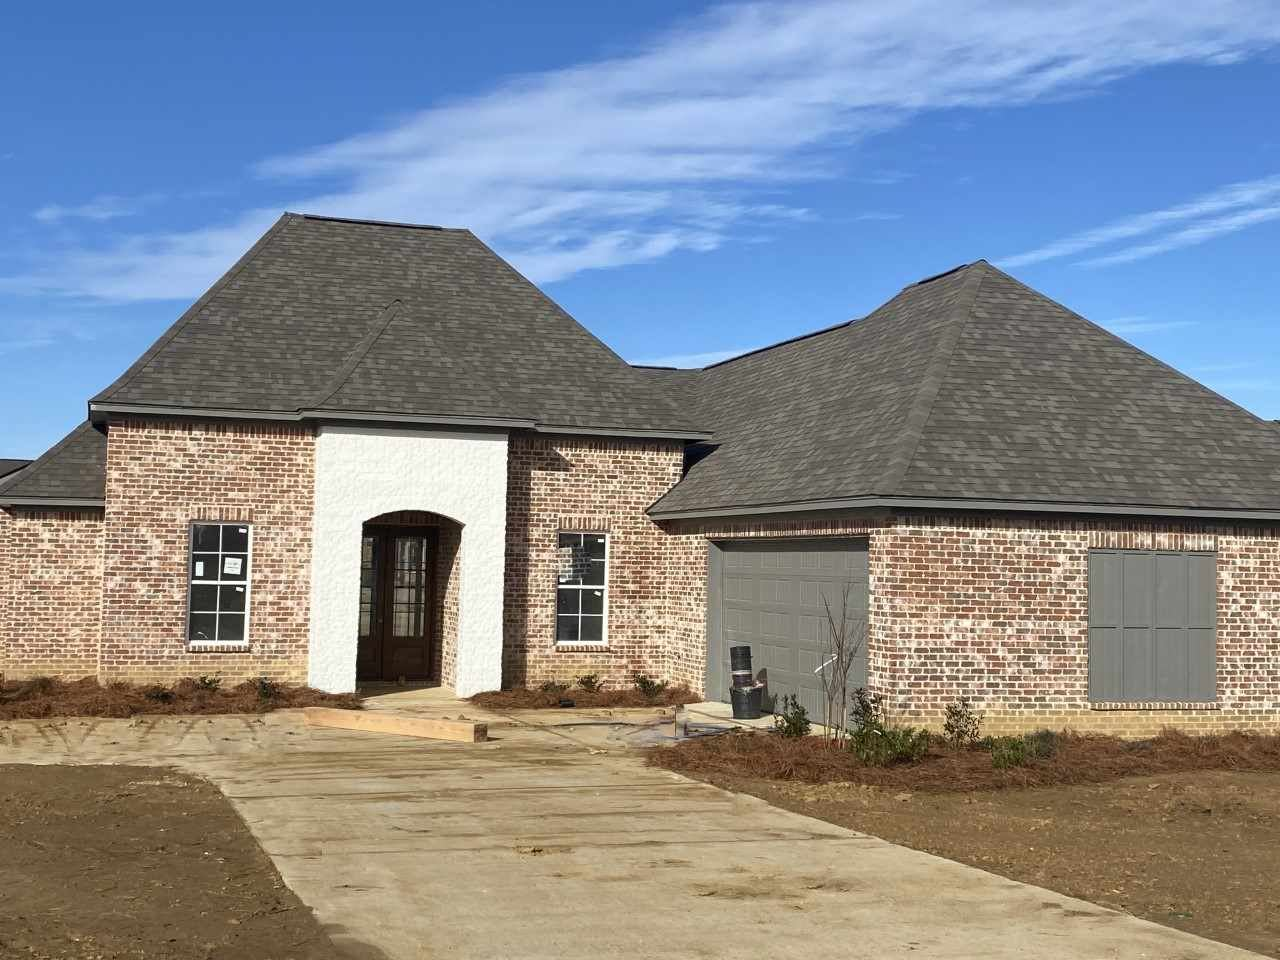 115 SWEETBRIAR DR, Canton, MS 39046 - MLS#: 334207